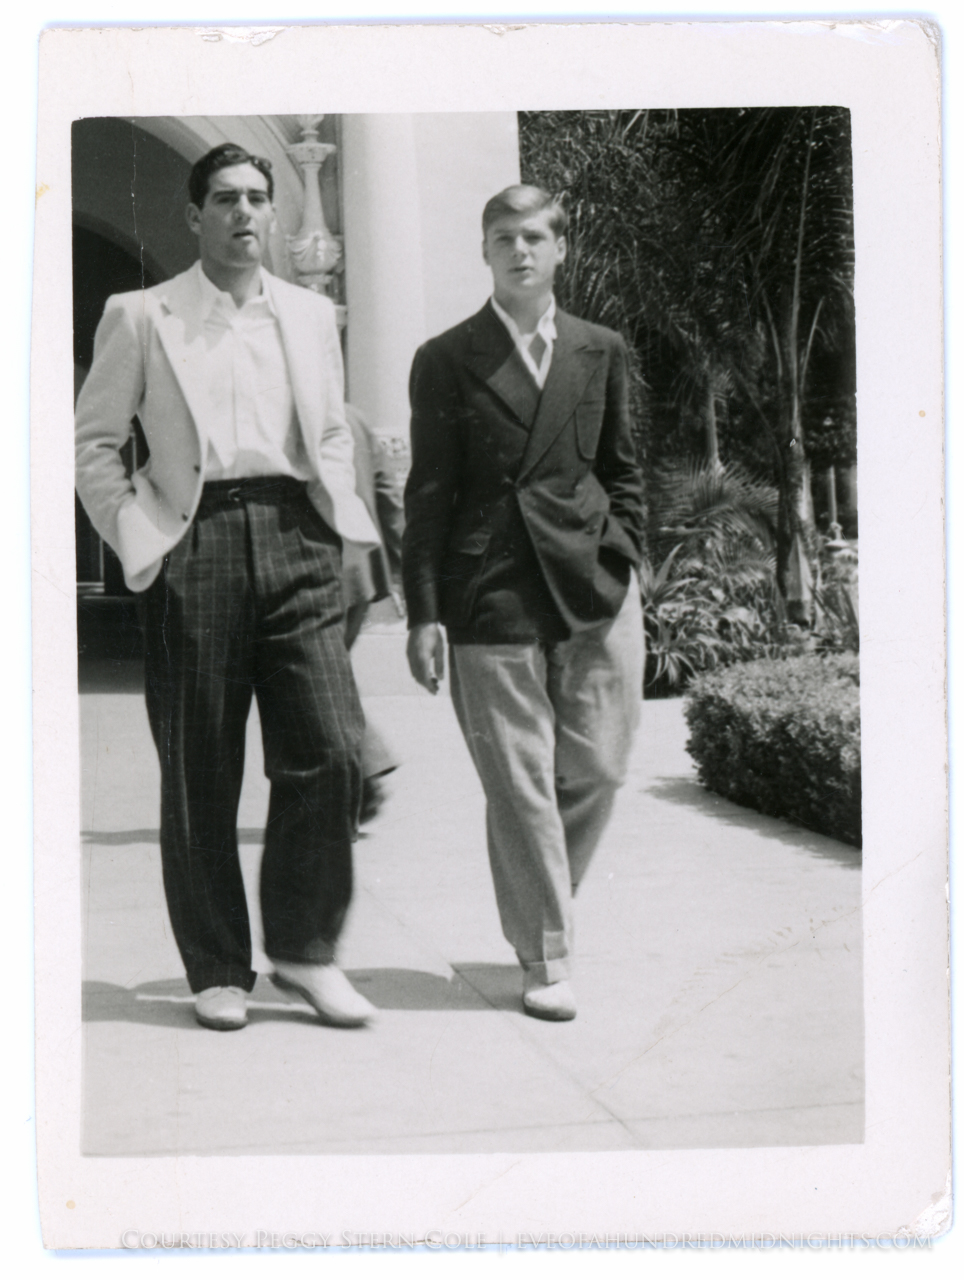 Melville Jacoby and a friend at Stanford